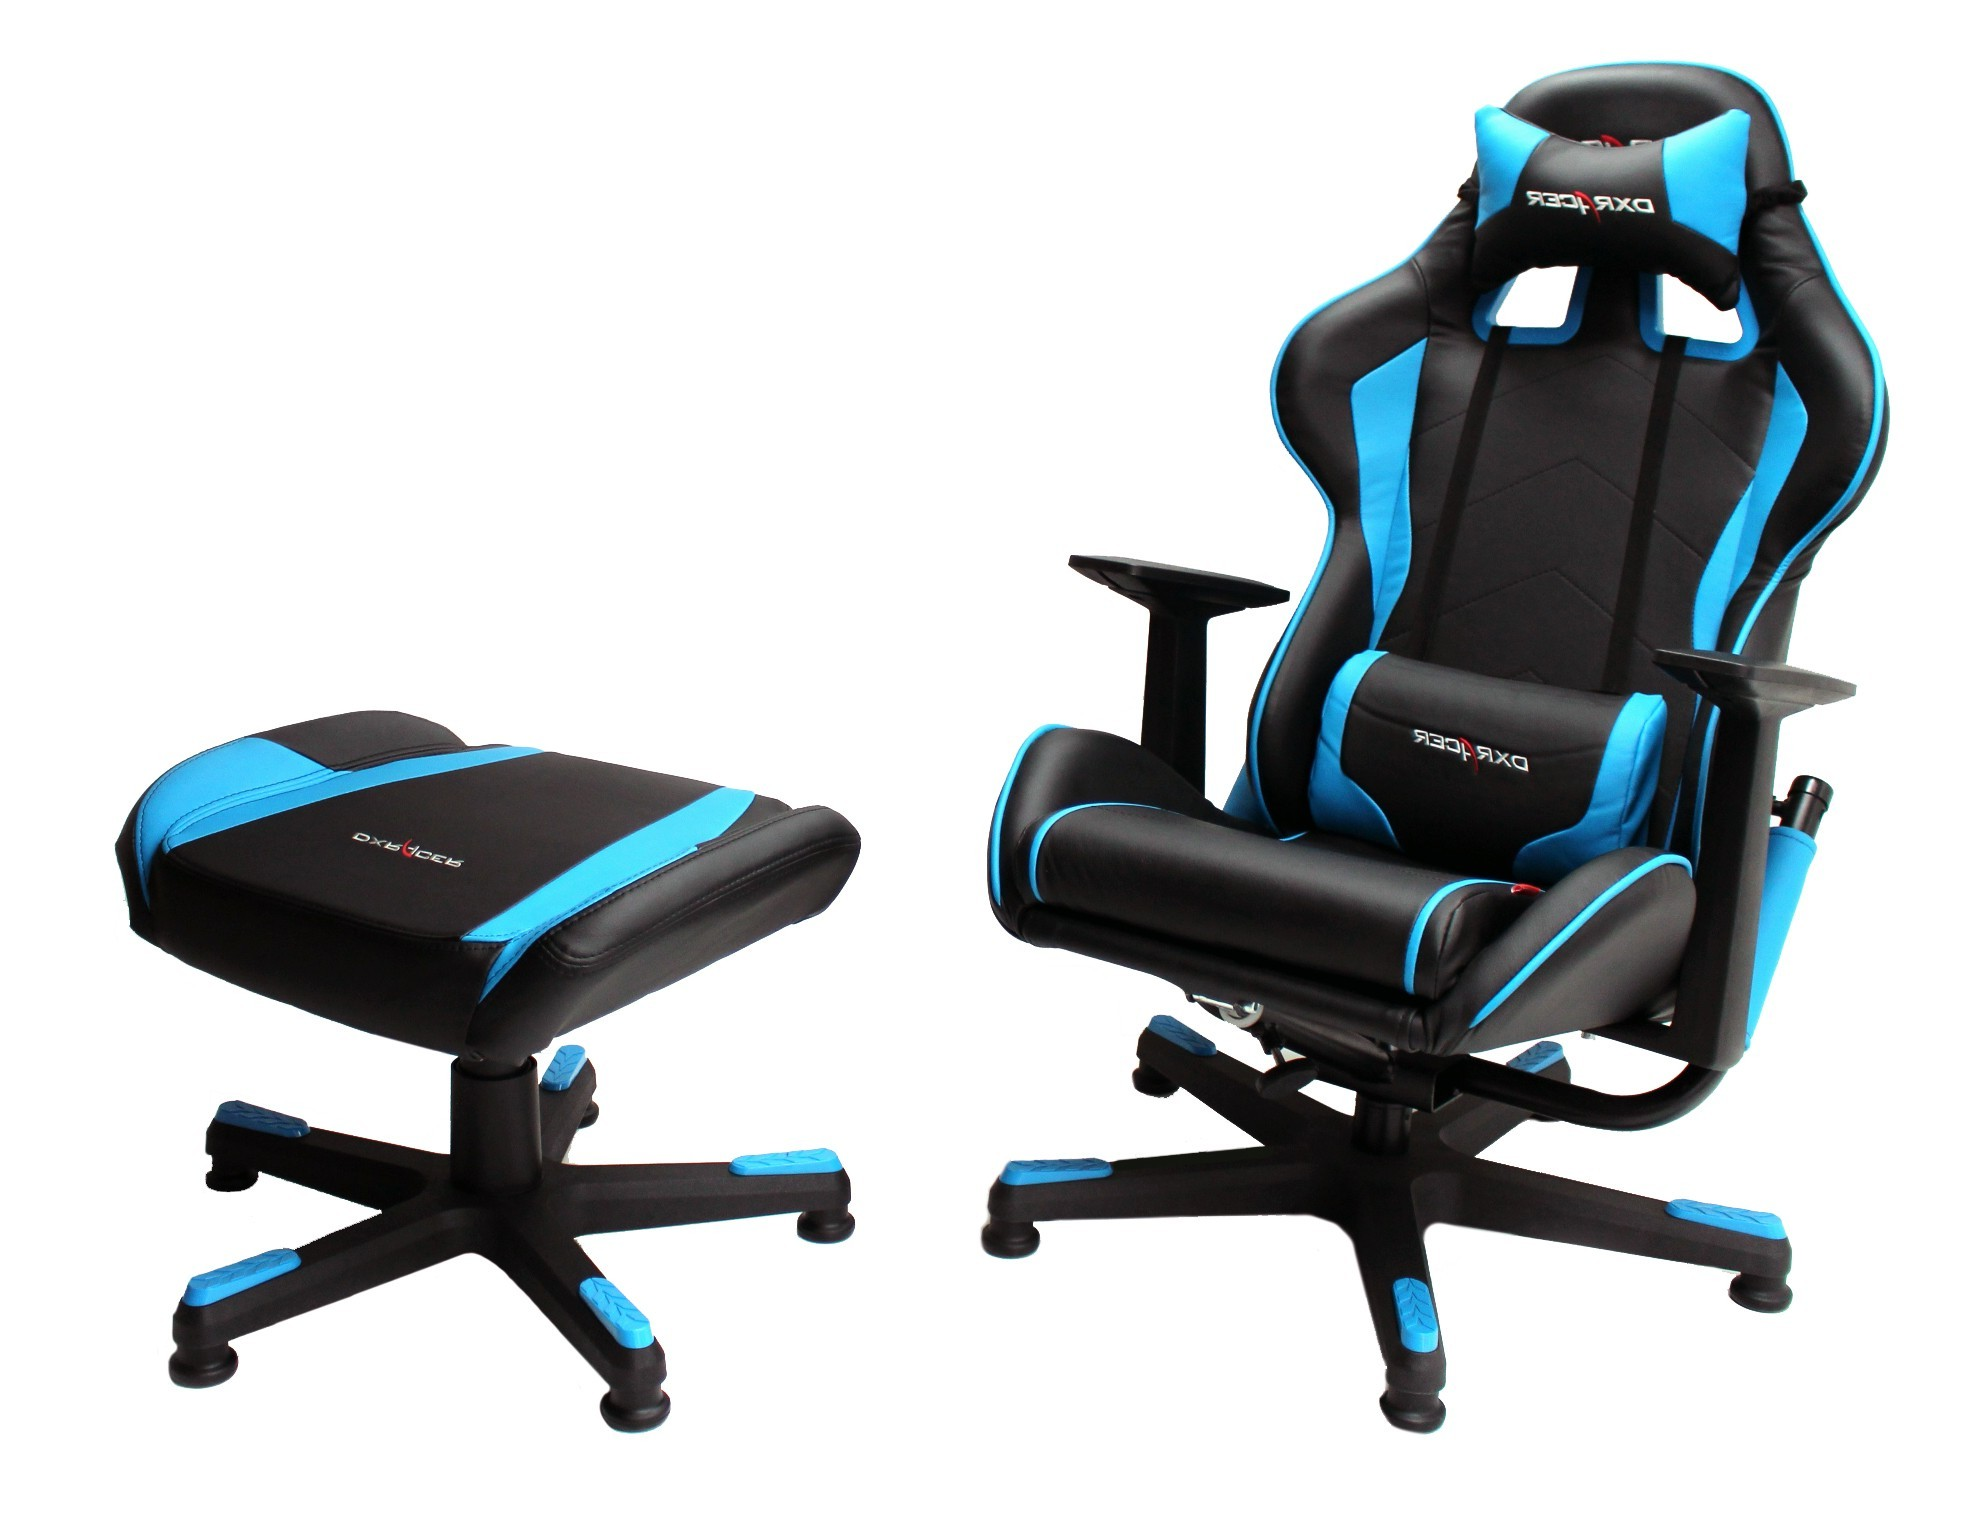 dxr gaming chair